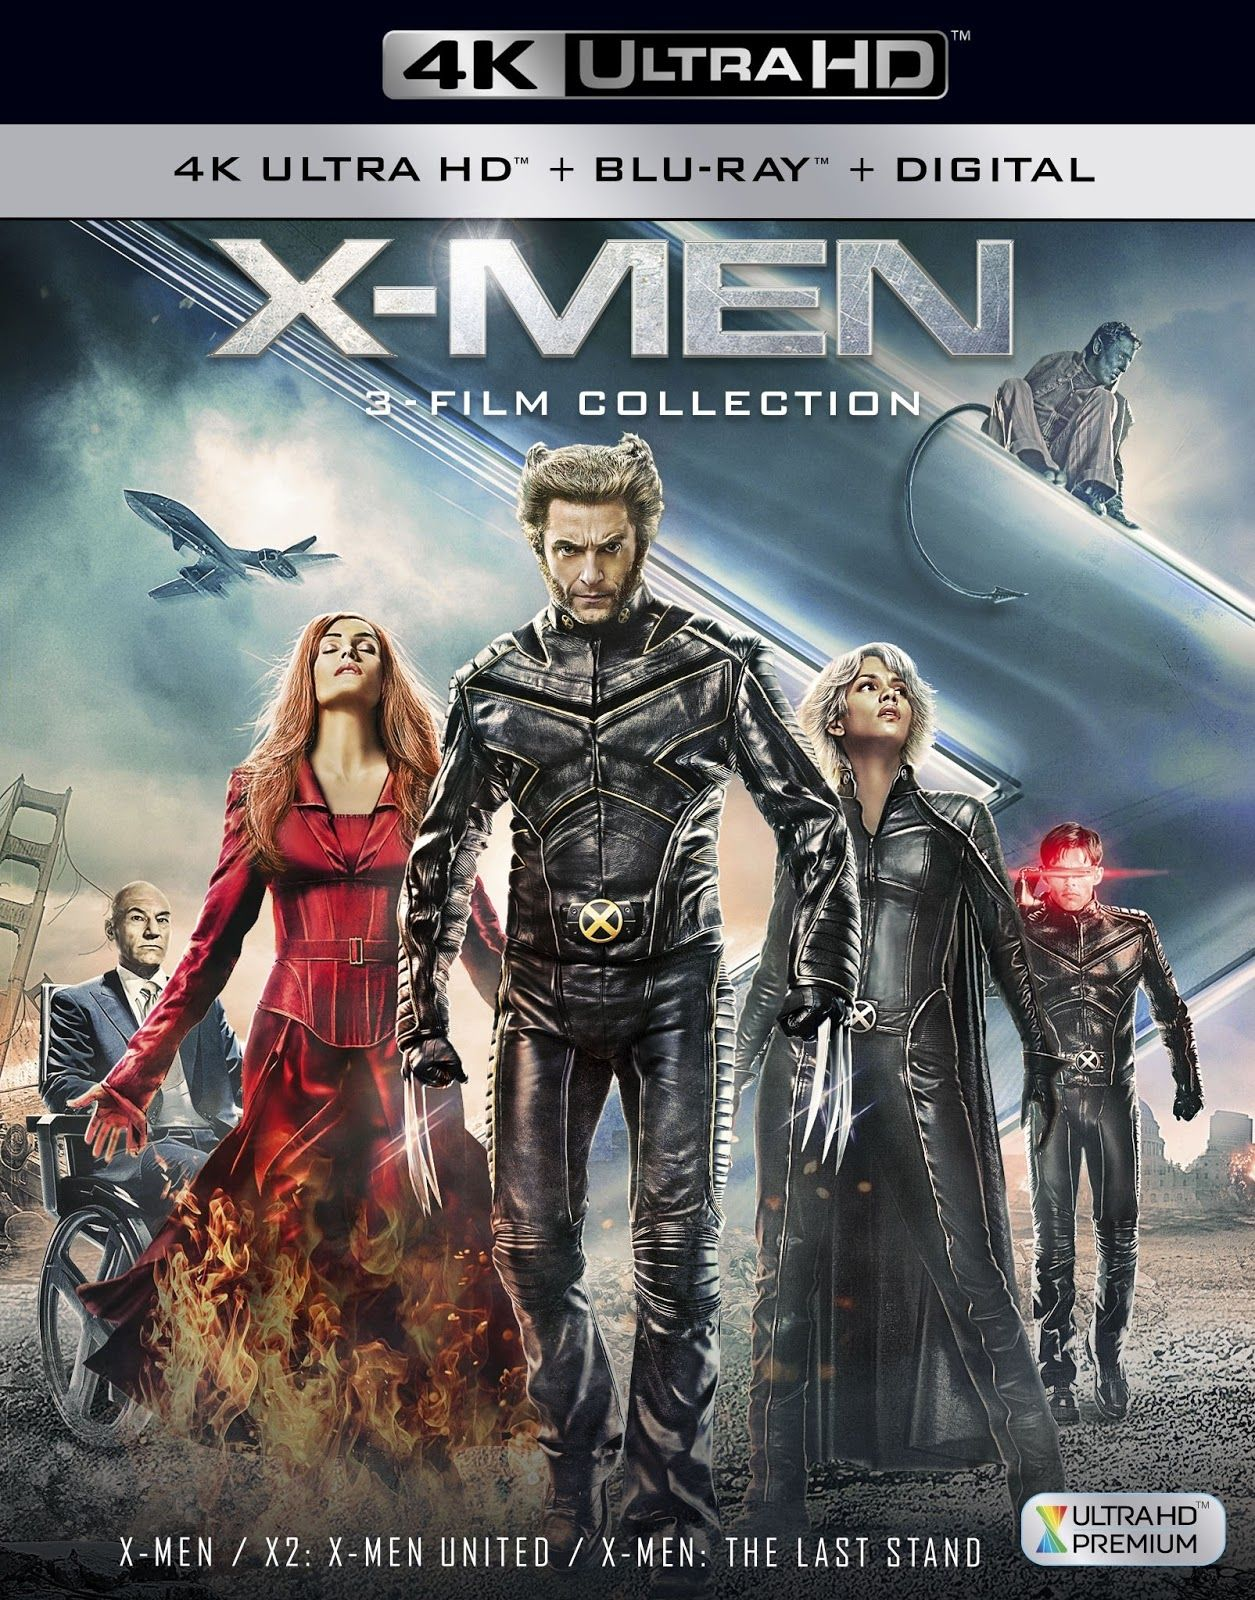 To Celebrate The Upcoming Release Of X Men Dark Phoenix 20th Century Fox Has Released The Original X Men Films In A B X Men Best Superhero Movies Man Movies